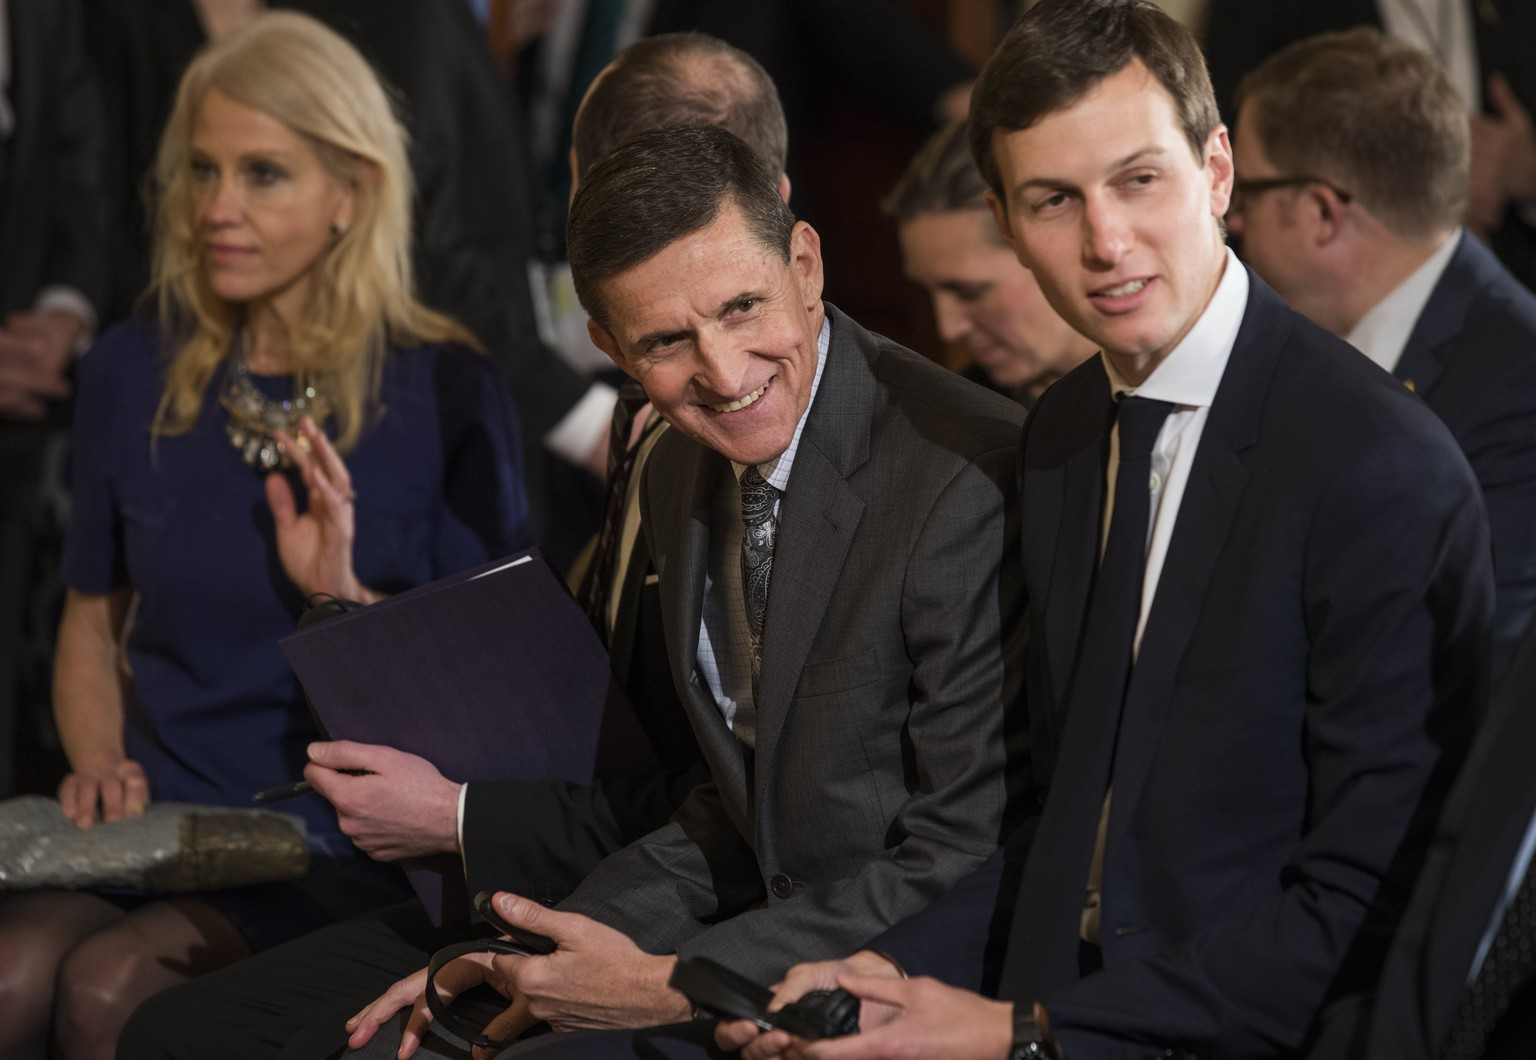 epa05791639 Embattled National Security Advisor Michael Flynn (C) flanked by Kellyanne Conway (L) and Jared Kushner (R) attends a press conference with US President Donald J. Trump and Canadian Prime Minister Justin Trudeau in the East Room of the White House in Washington, DC, USA, 13 February 2017. Flynn is facing growing scrutiny for discussing U.S. sanctions against Russia with the Russian ambassador to the U.S. prior to Trump taking office.  EPA/JIM LO SCALZO